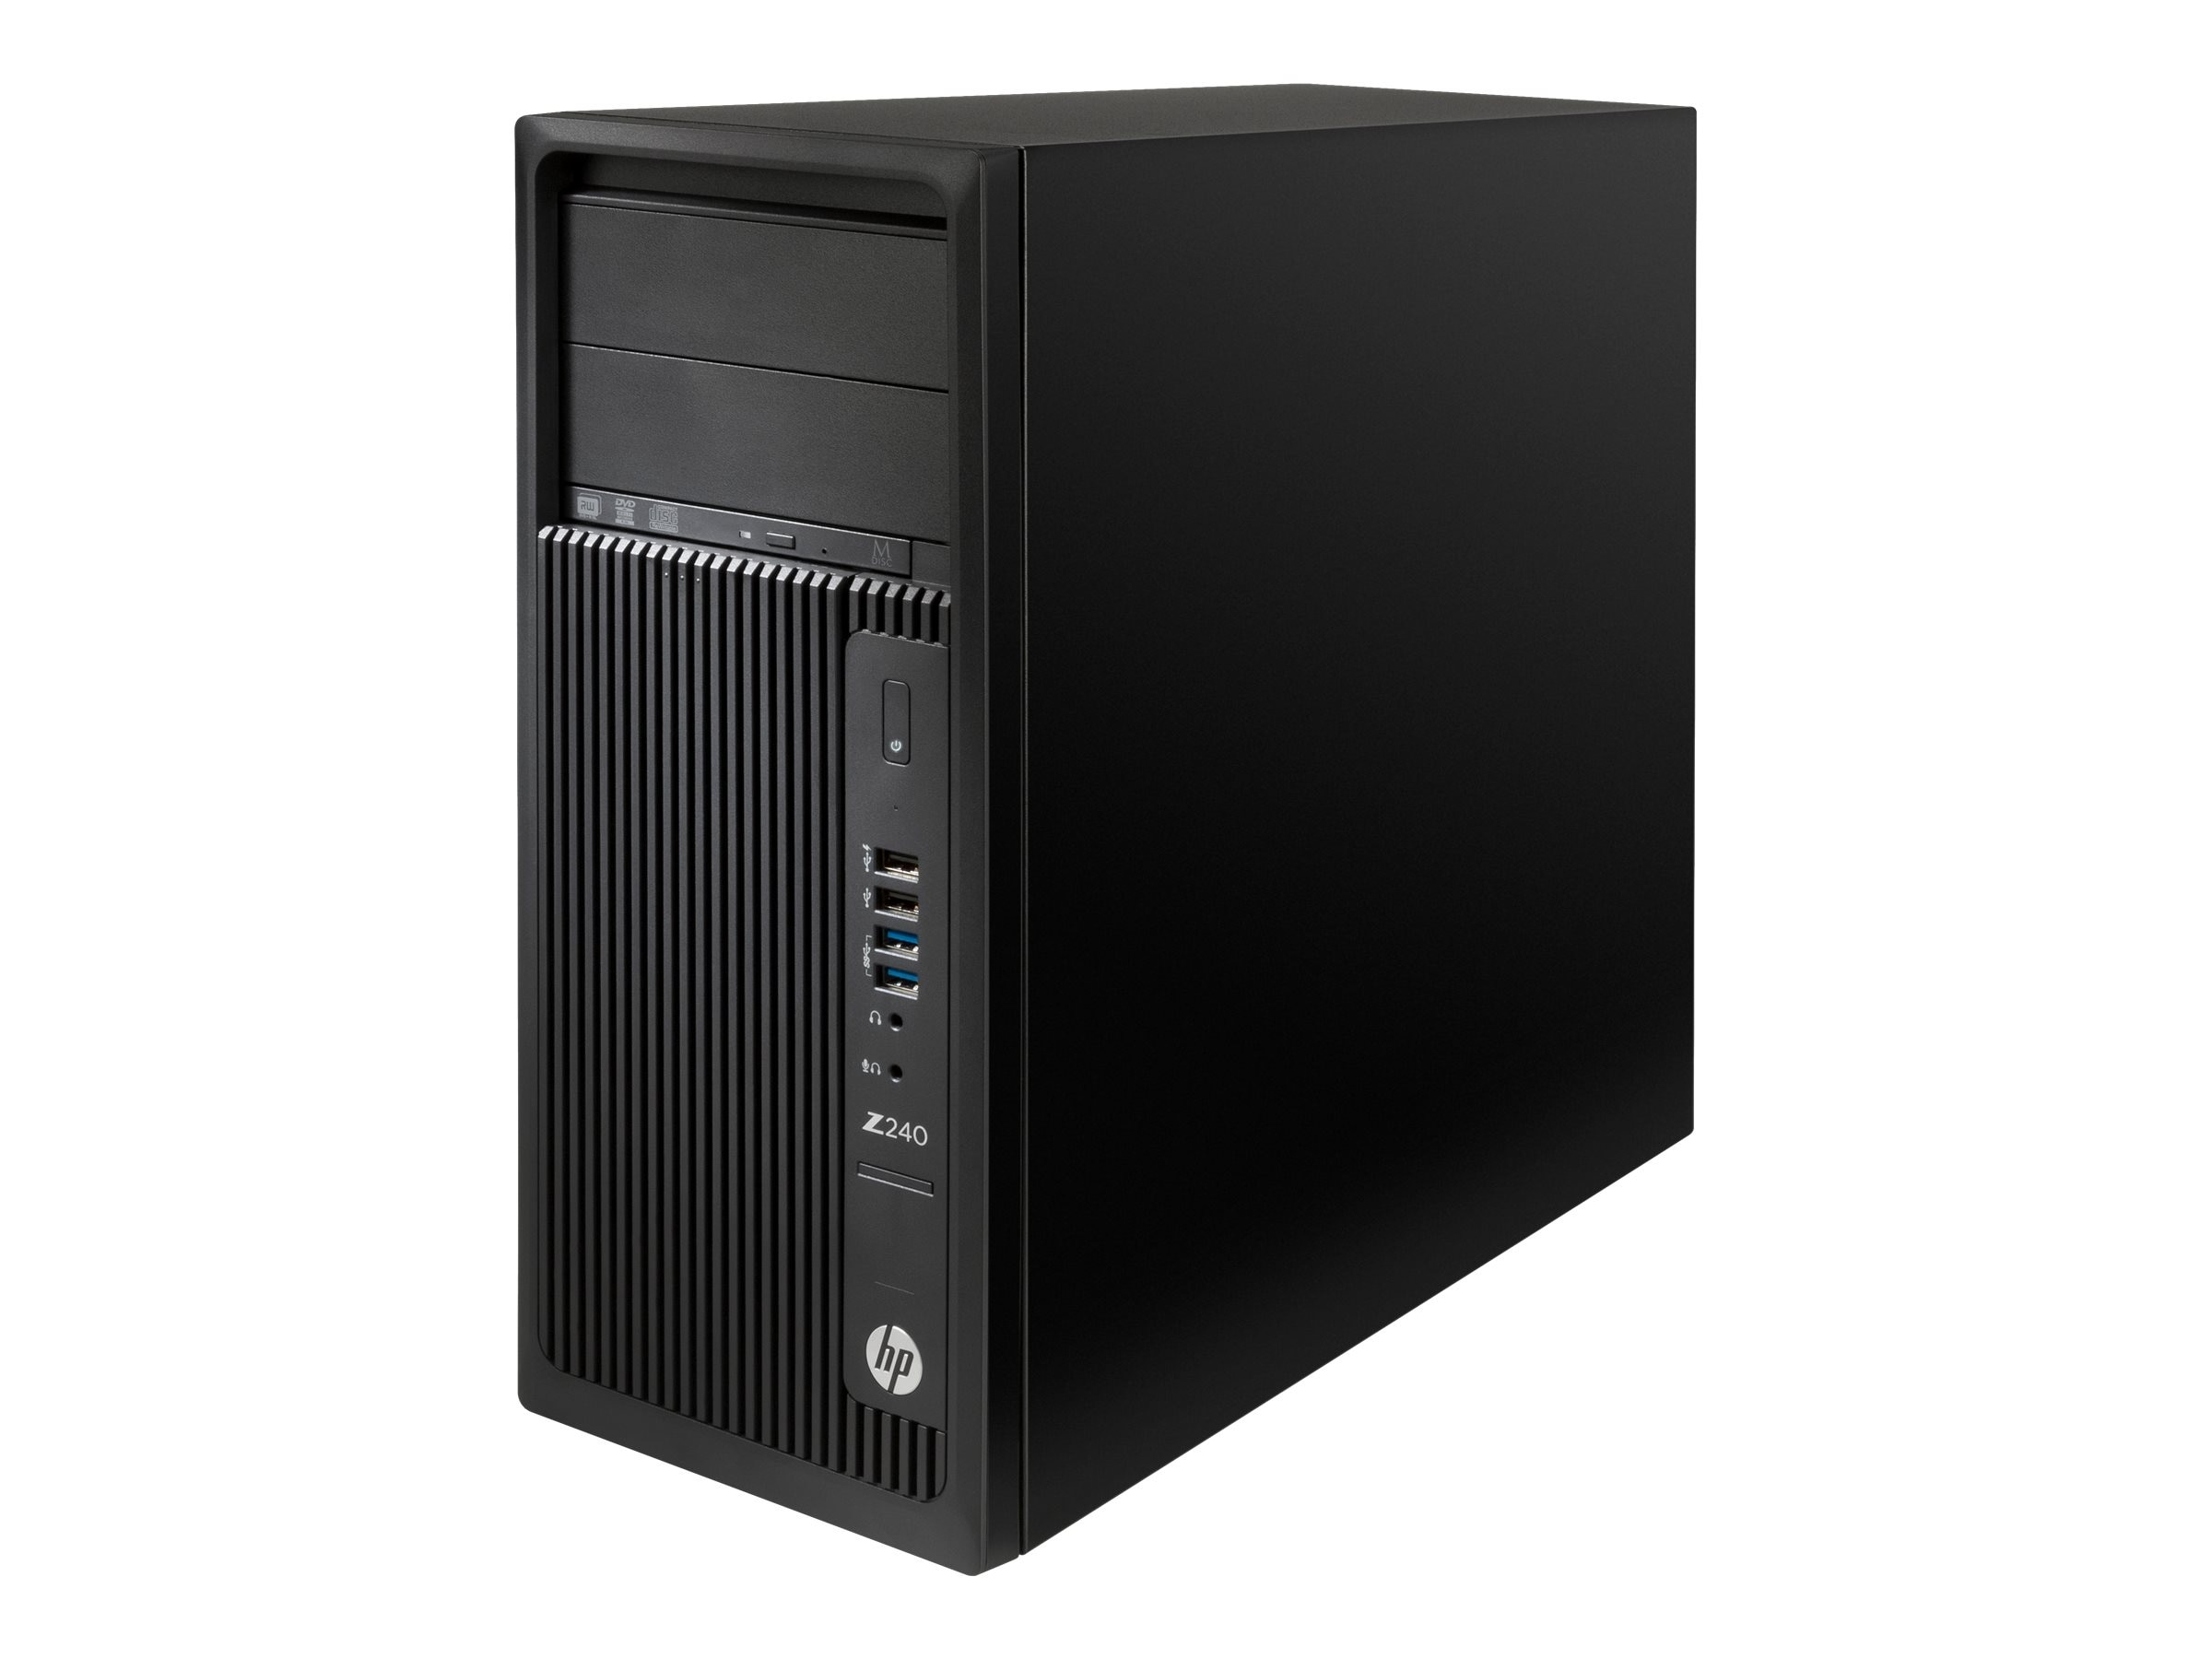 HP Z240 3.4GHz Core i7 Microsoft Windows 7 Professional 64-bit Edition   Windows 10 Pro